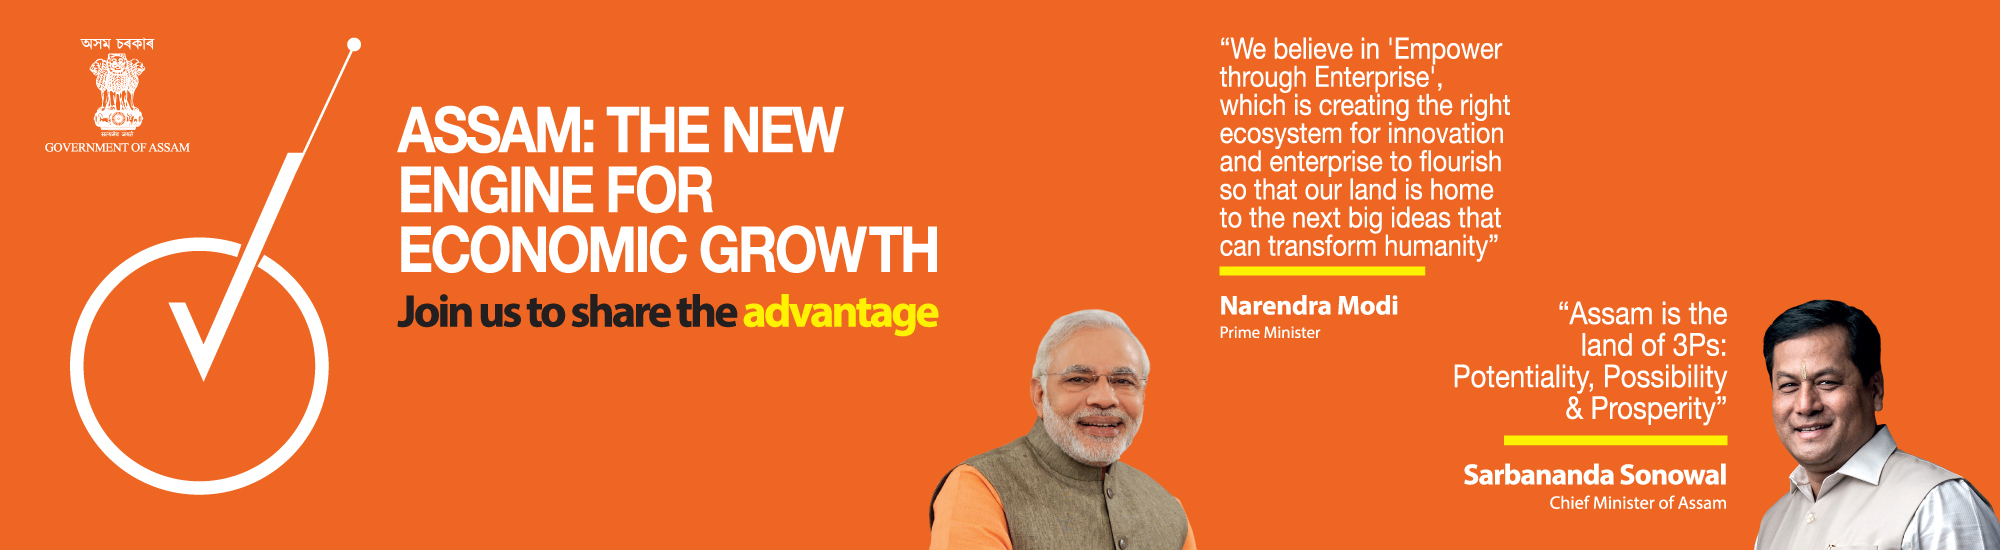 Advantage Assam - Explore vibrant business opportunities in Assam, India's expressway to ASEAN